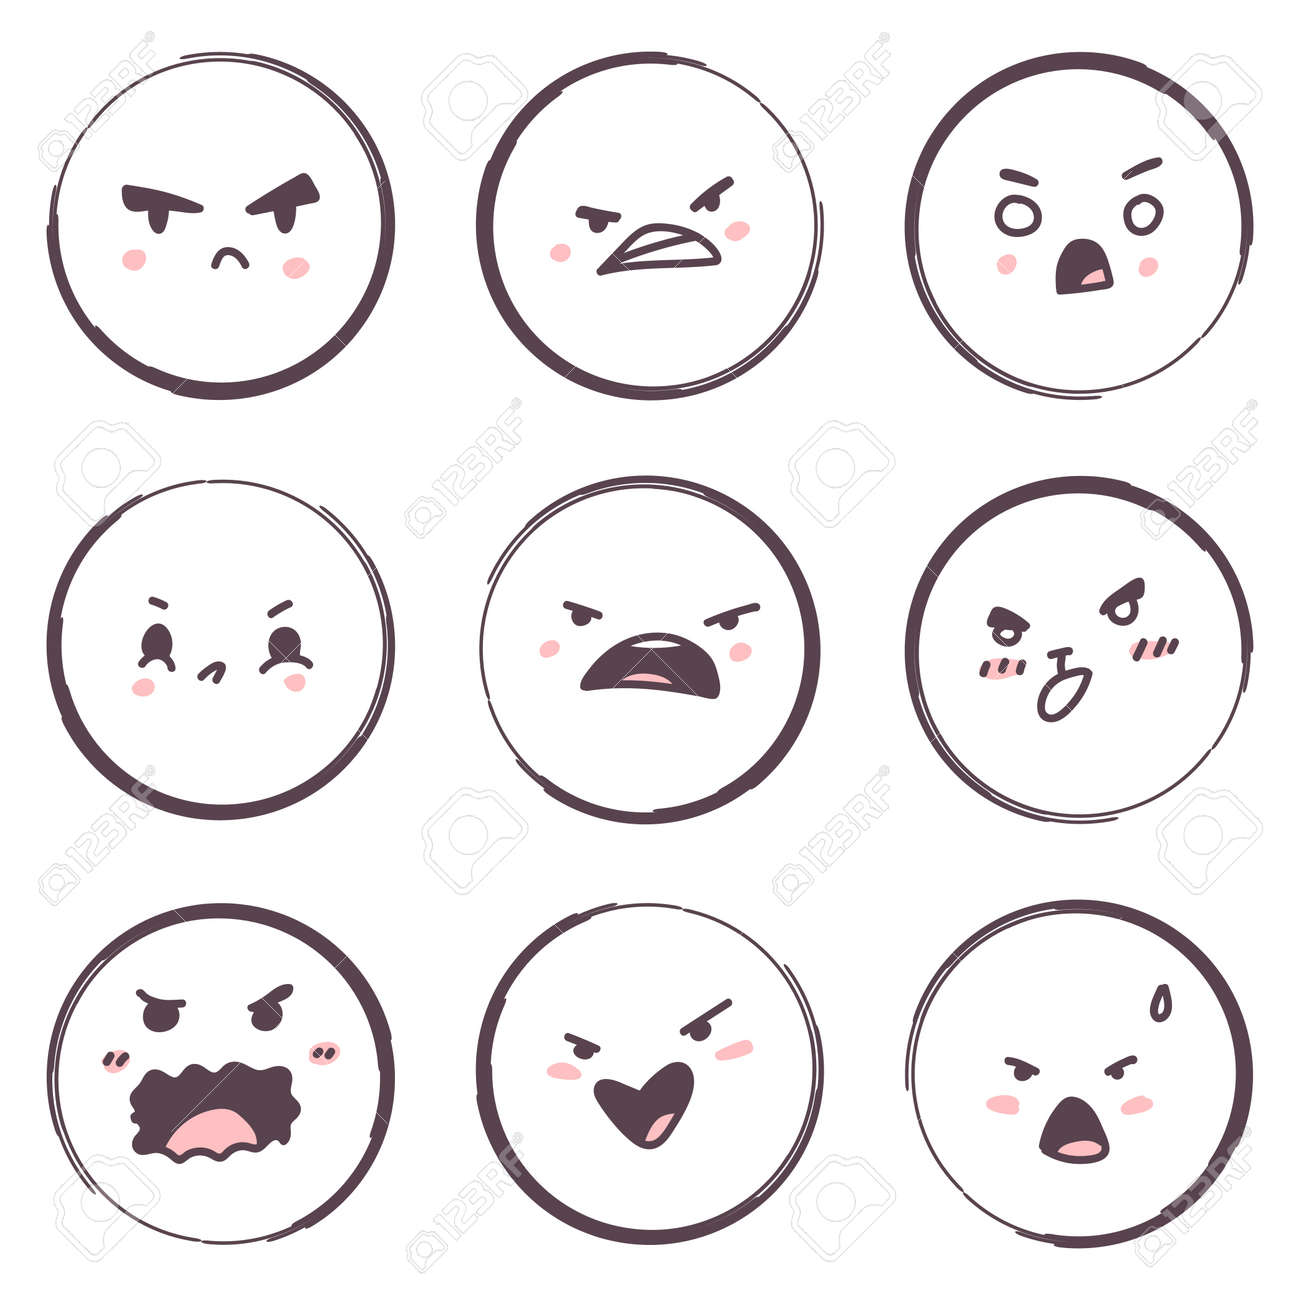 Angry cartoon face emotions vector set isolated on a white background. - 172750155